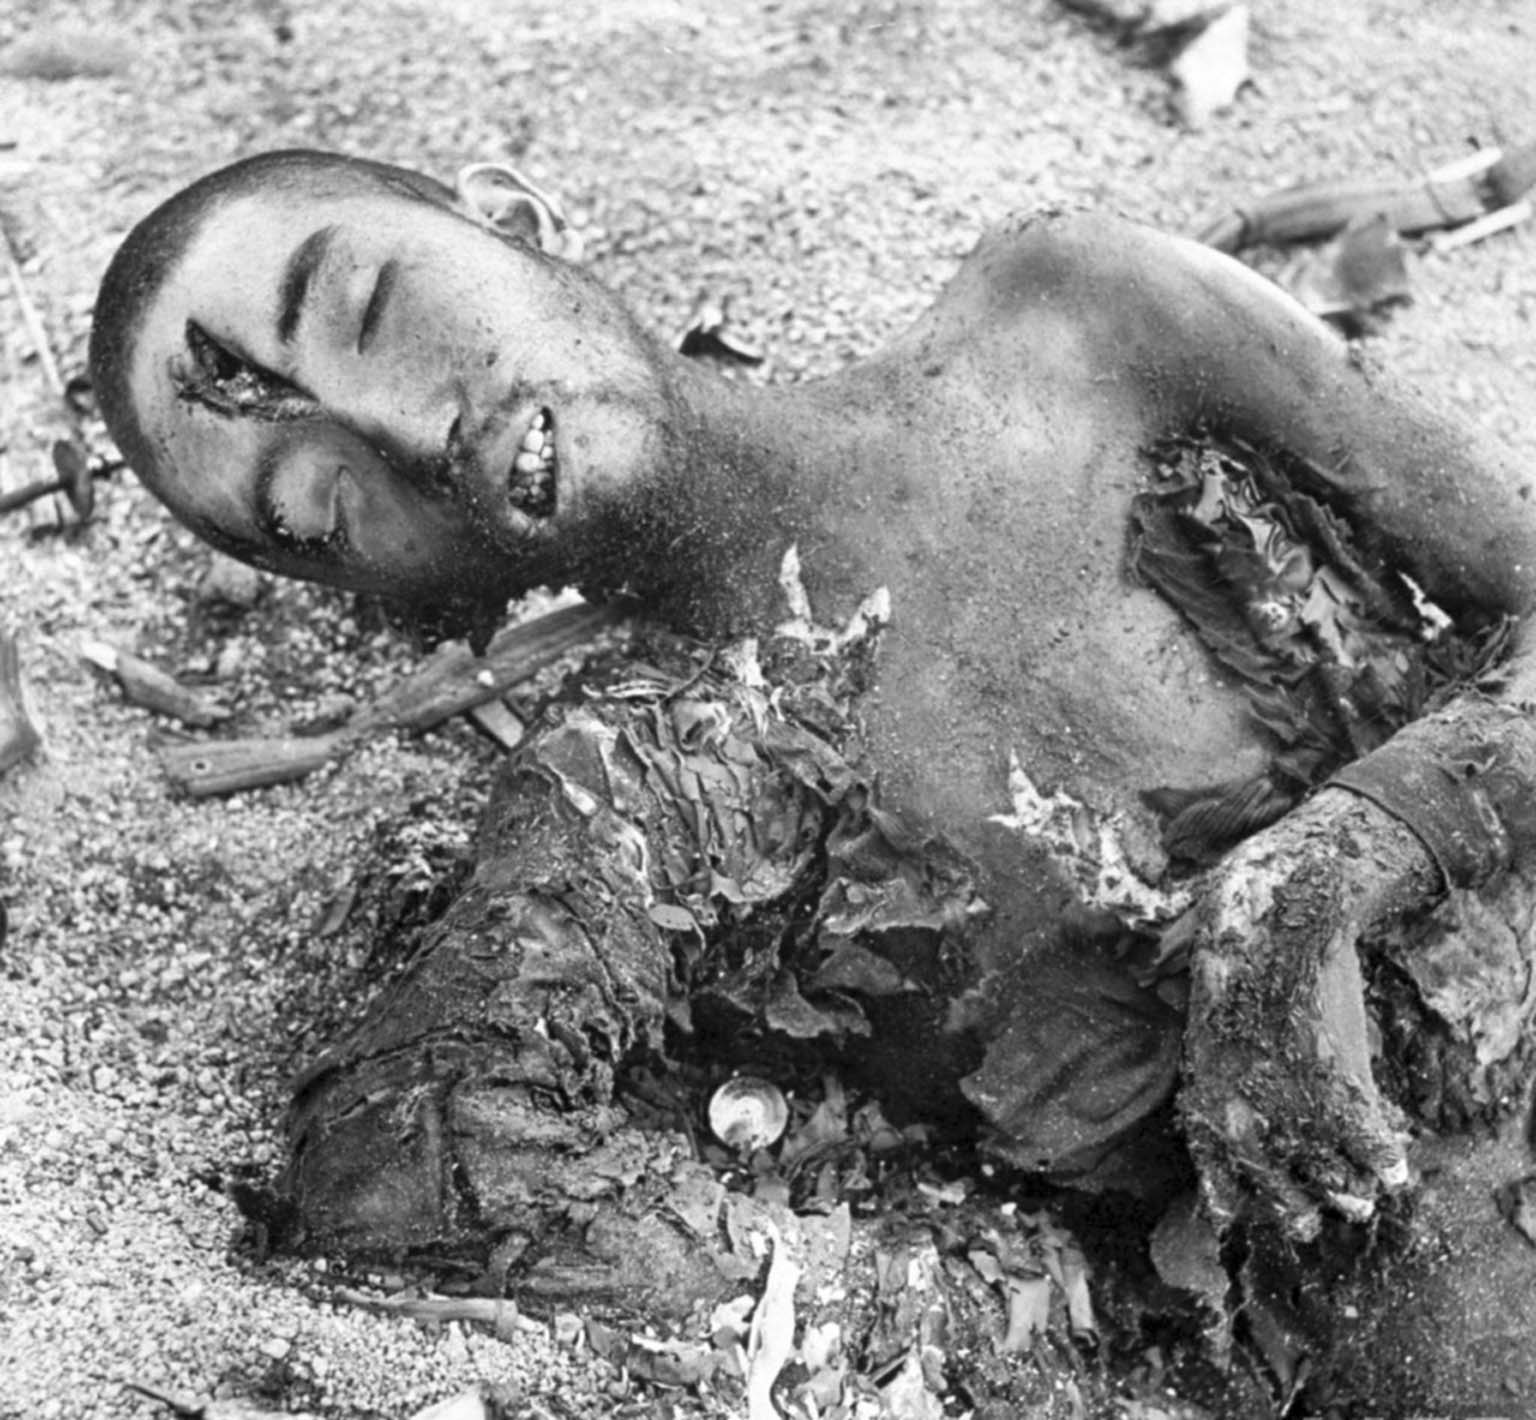 Dead Japanese soldier